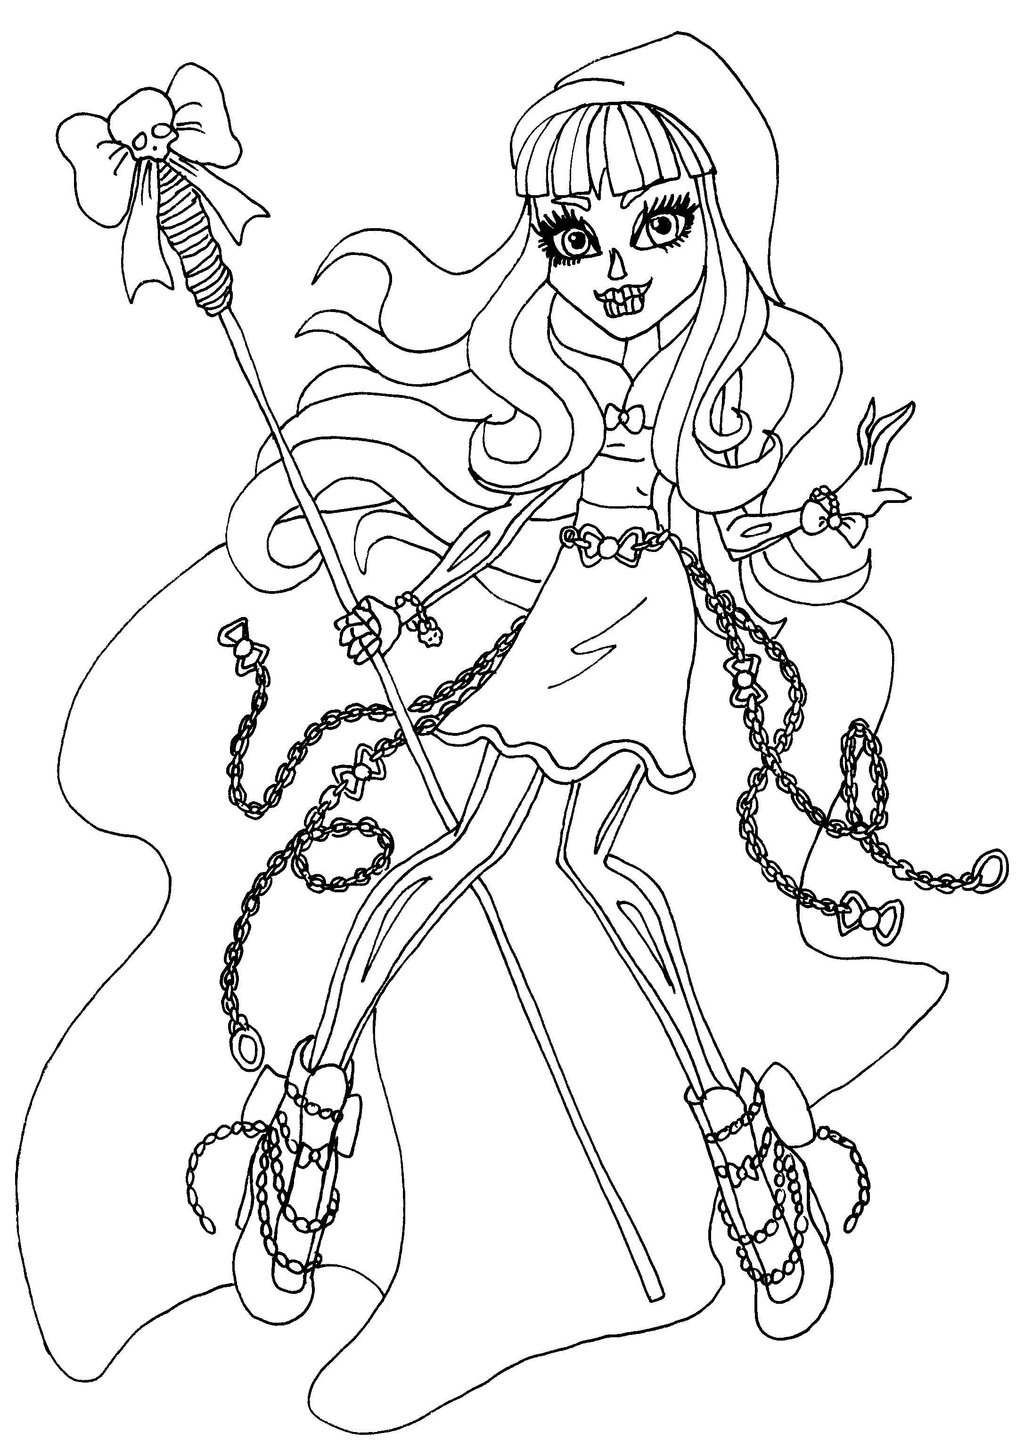 monster high drawing pictures monster high drawing pictures monster high pictures drawing